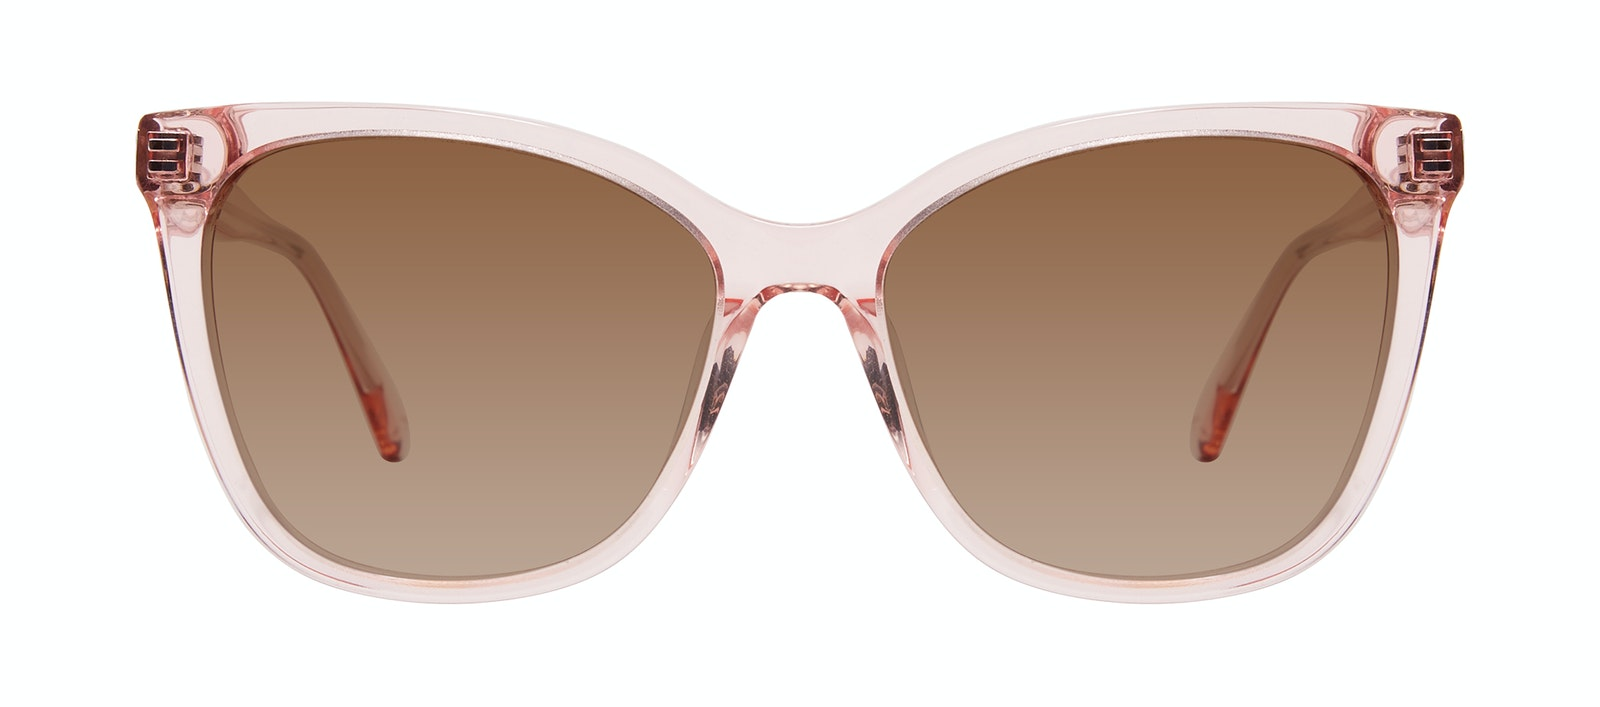 Affordable Fashion Glasses Cat Eye Sunglasses Women Klee Peony Front